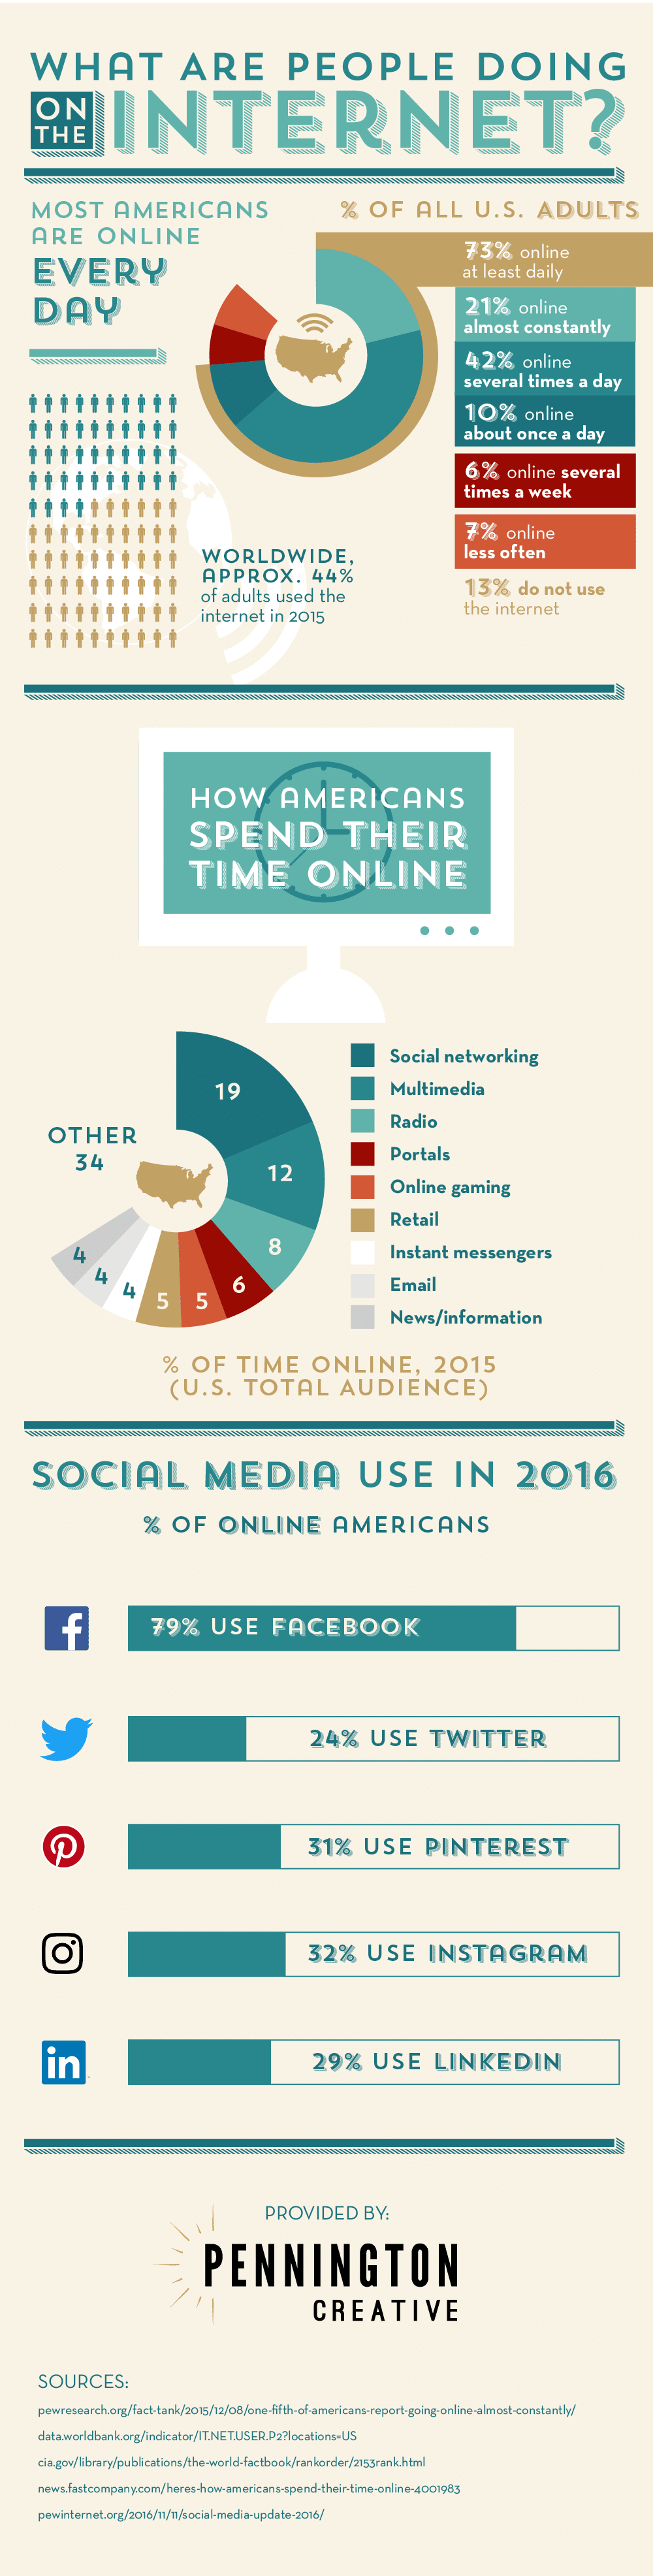 Infographic with facts and statistics about modern internet users' habits.